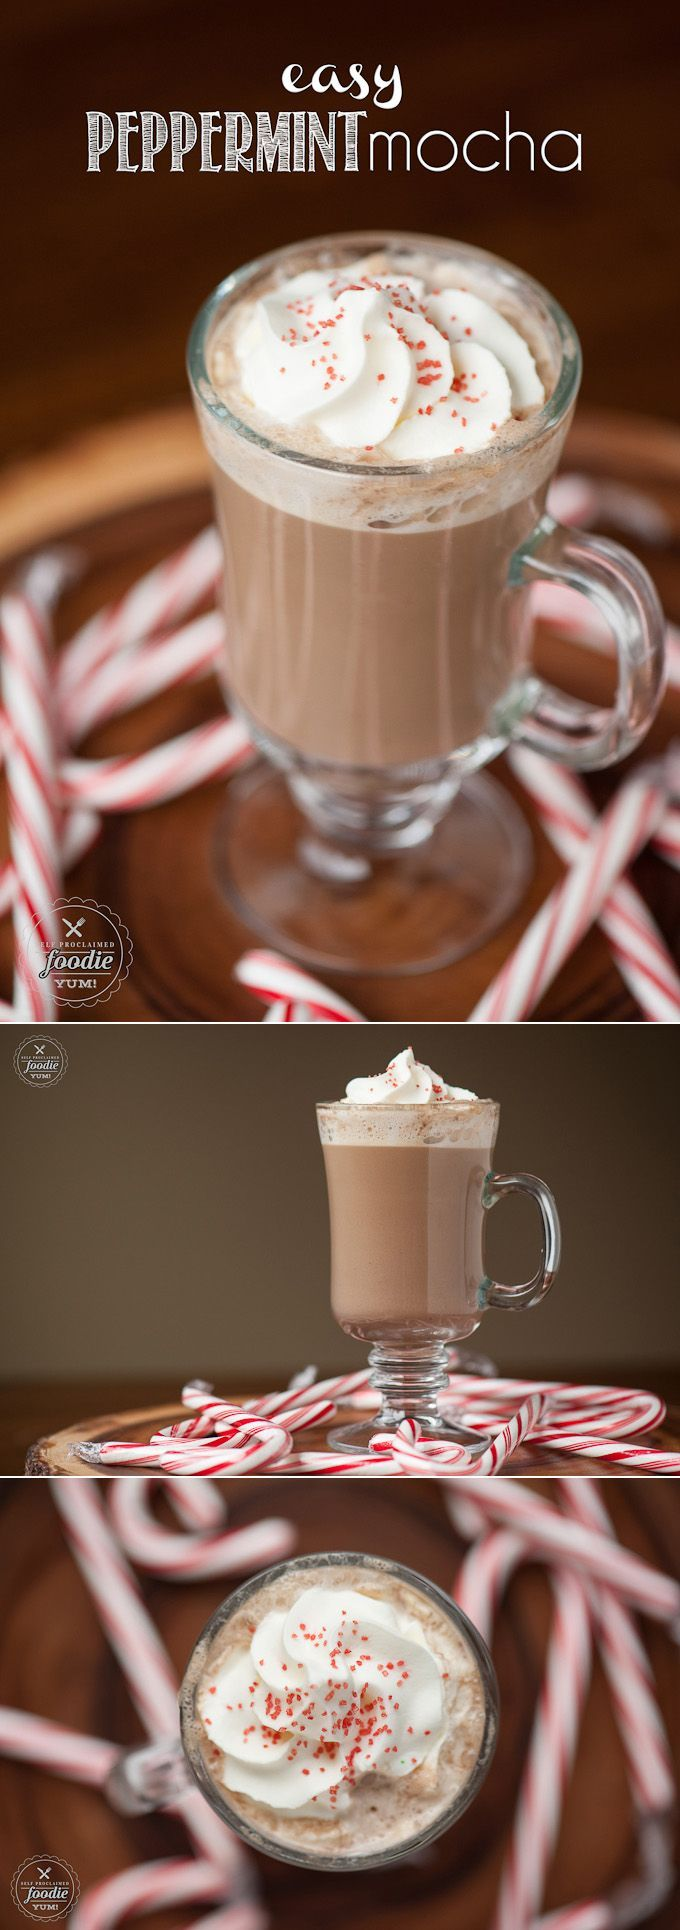 Don't waste your money on expensive holiday drinks at the coffee place when you can make your own delicious Easy Peppermint Mocha in your own kitchen!